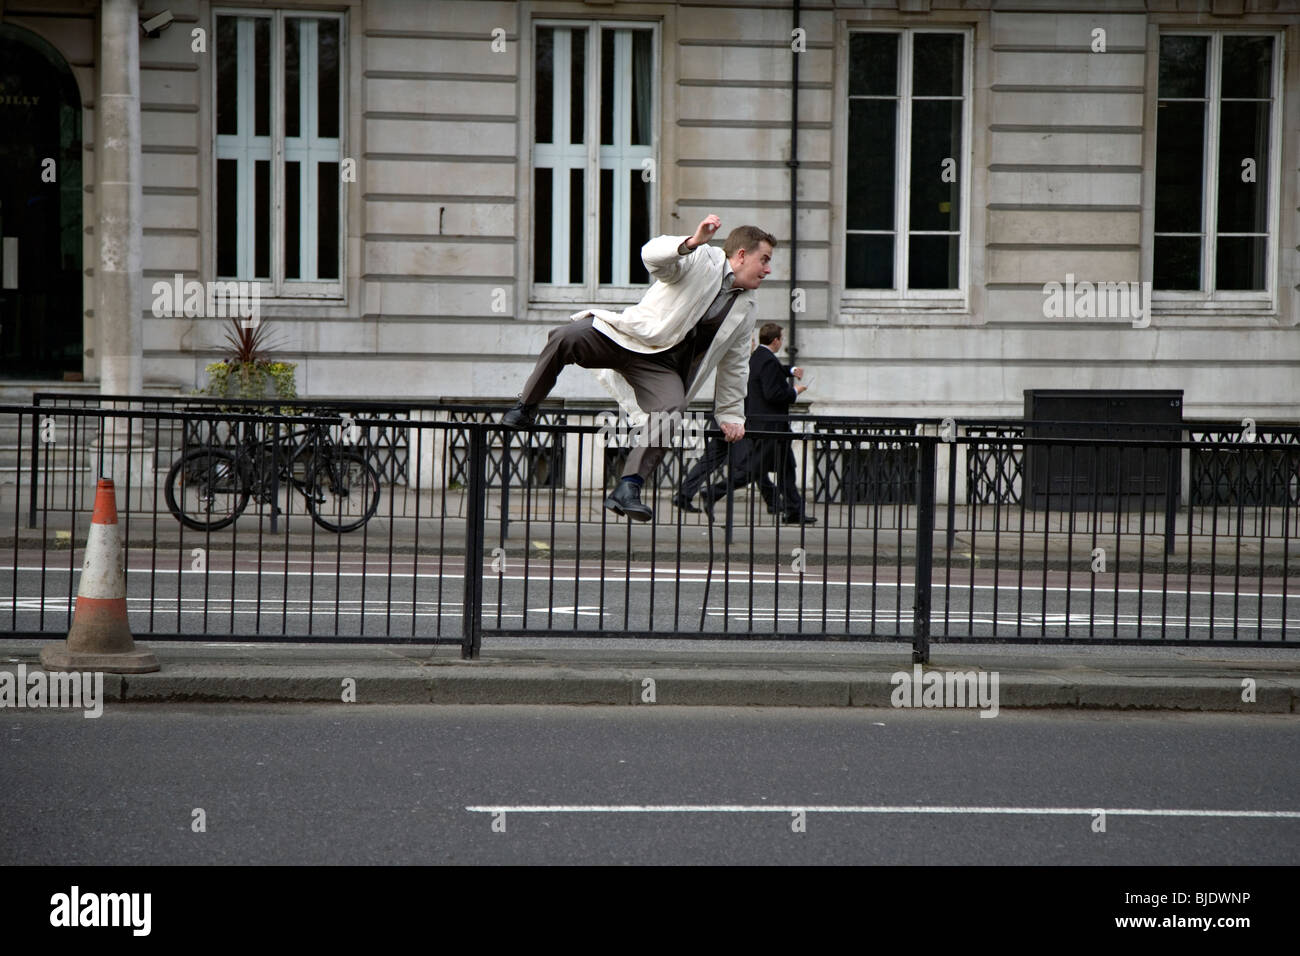 a man jumps a railing on piccadilly london - Stock Image